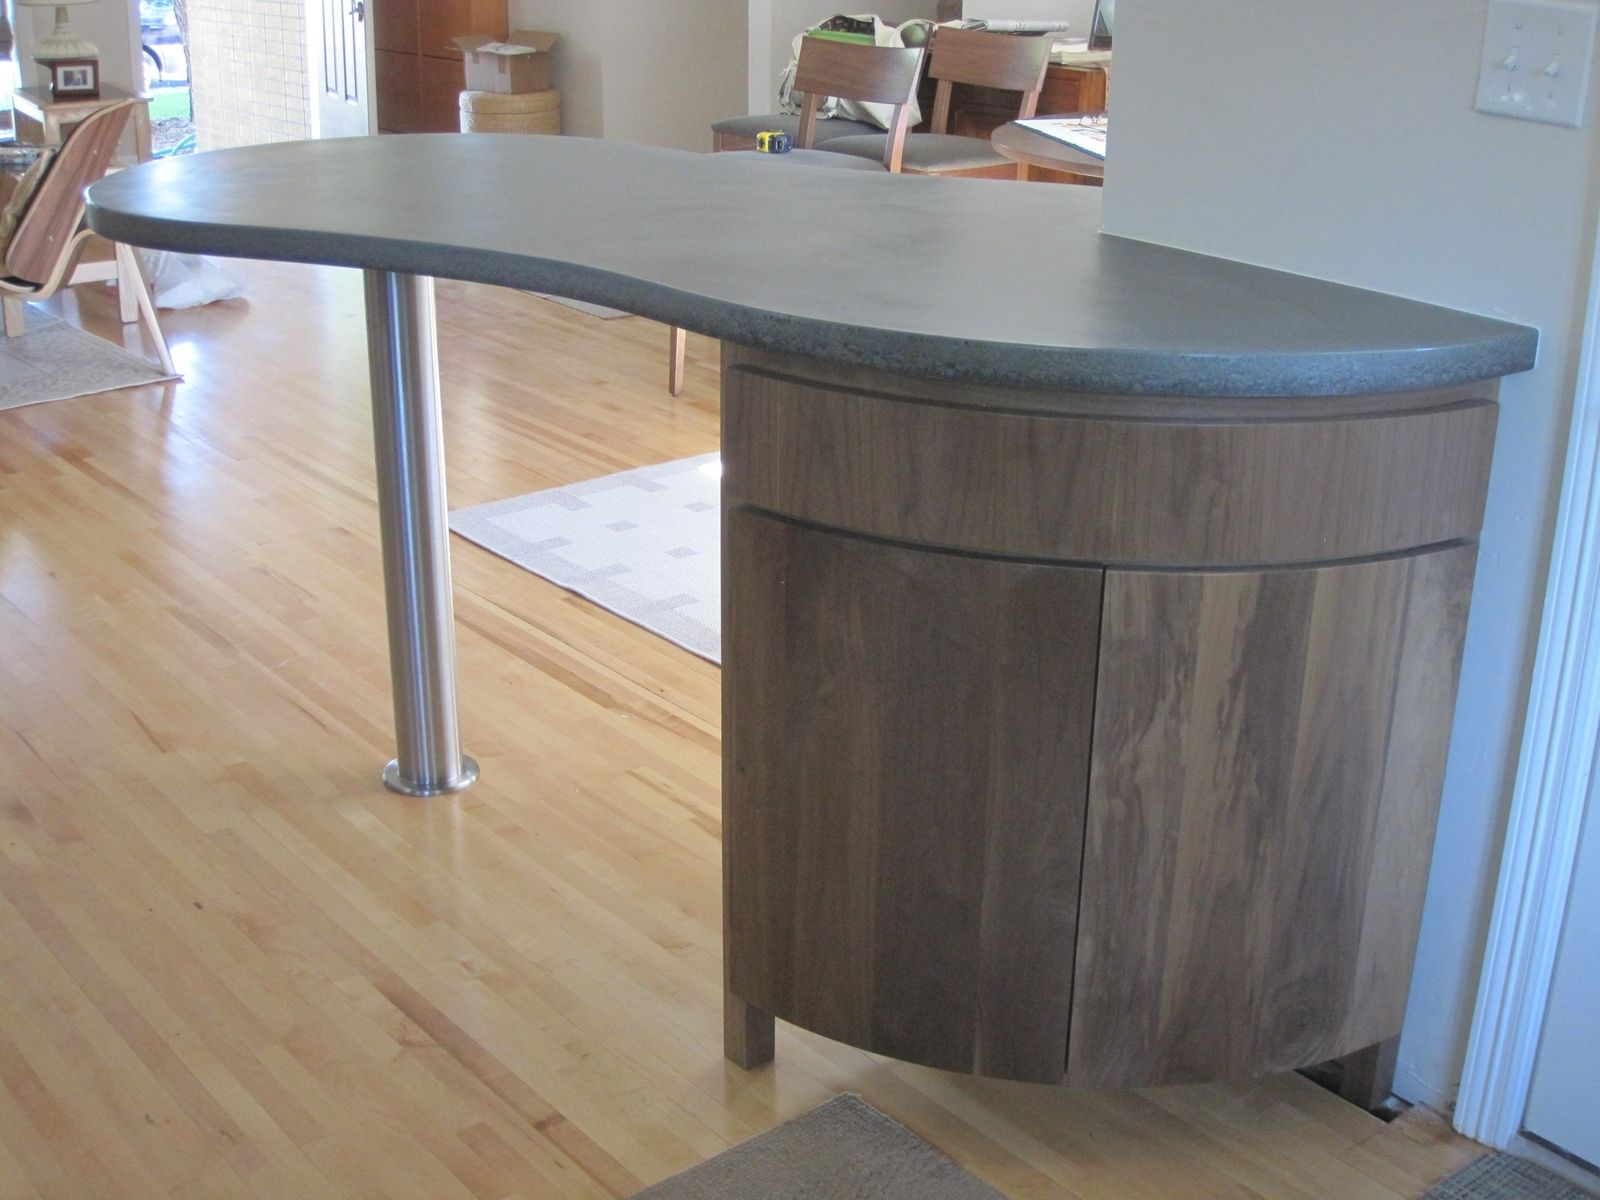 Best Kitchen Gallery: Hand Crafted Curved Kitchen Island Cabi By Mcguire Woodworking of Curved Kitchen Cabinets on rachelxblog.com